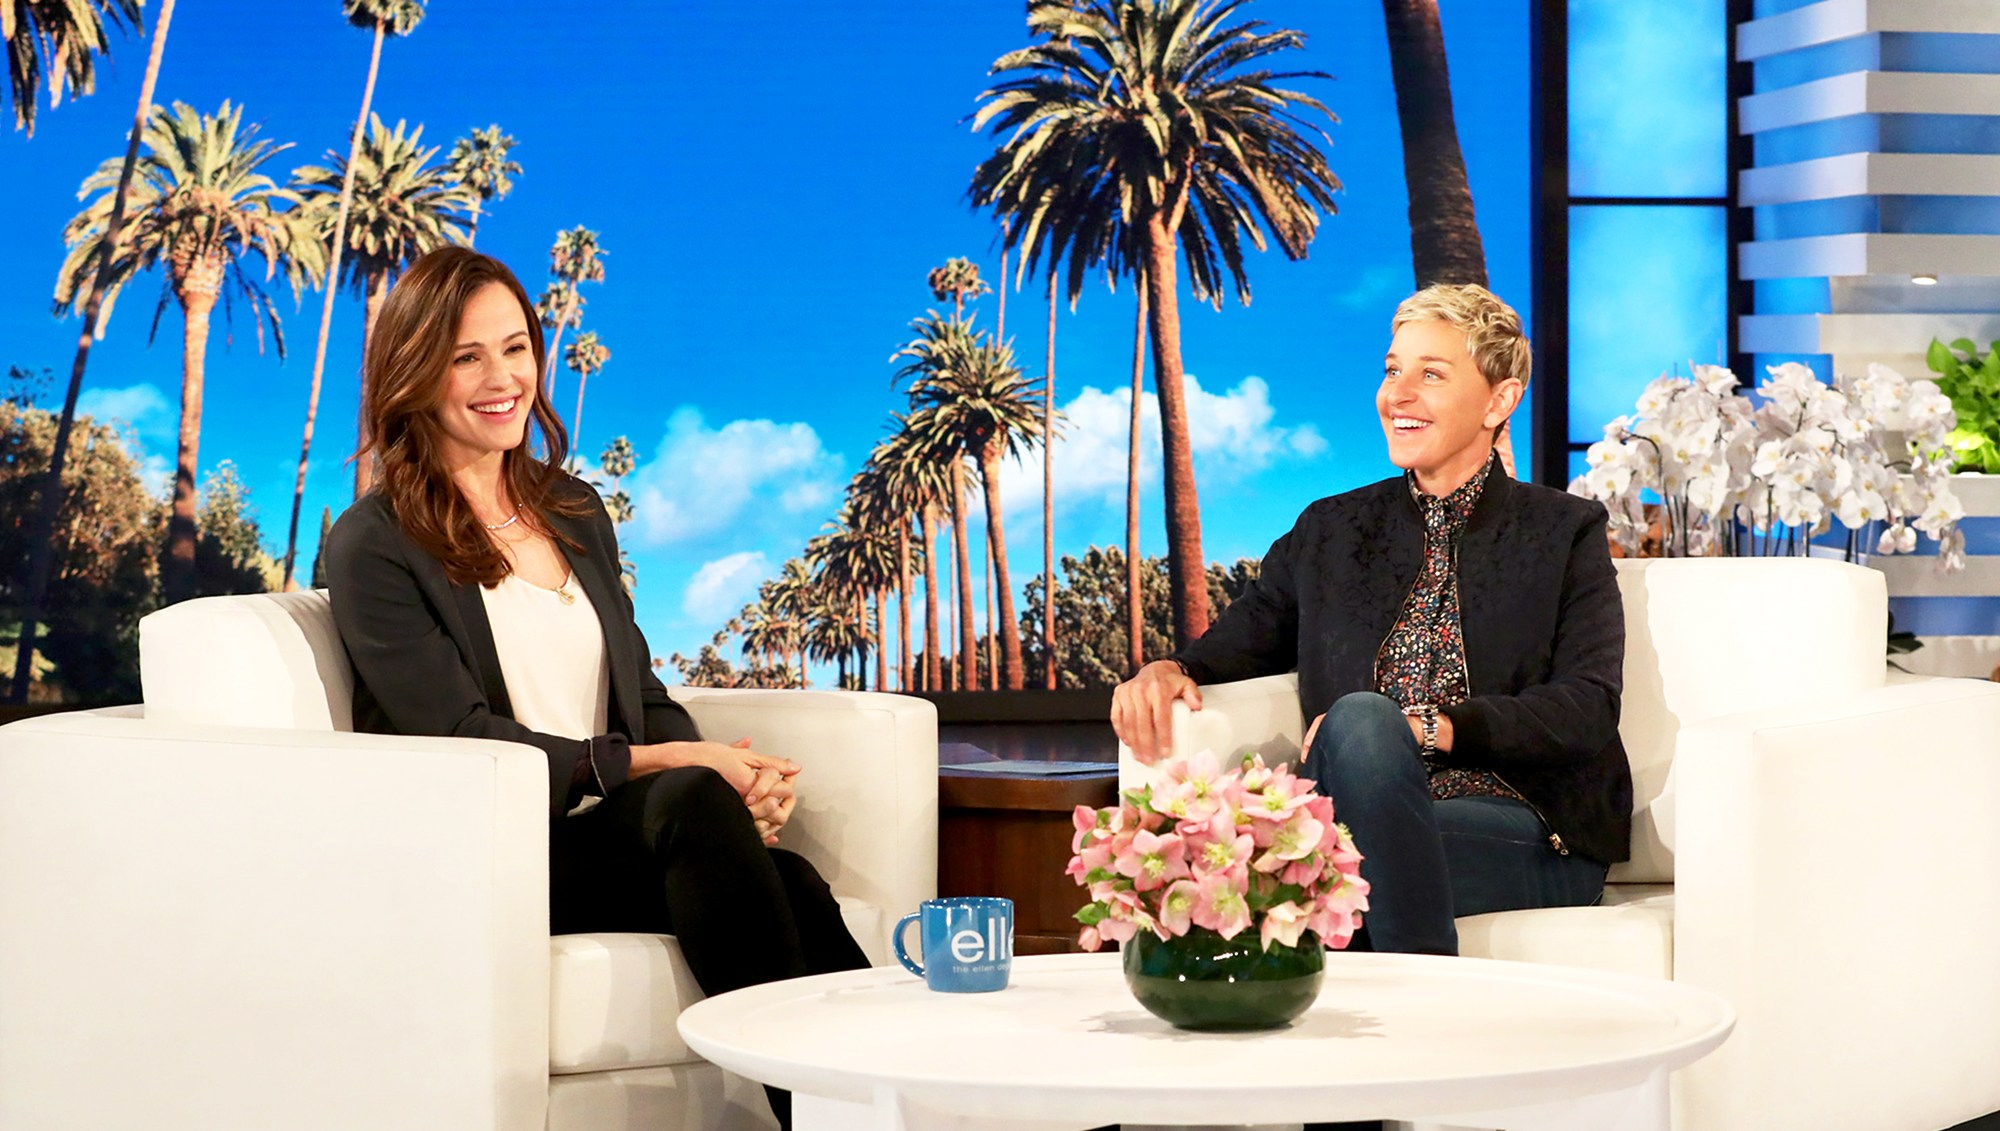 Jennifer Garner makes an appearance on 'The Ellen DeGeneres Show'